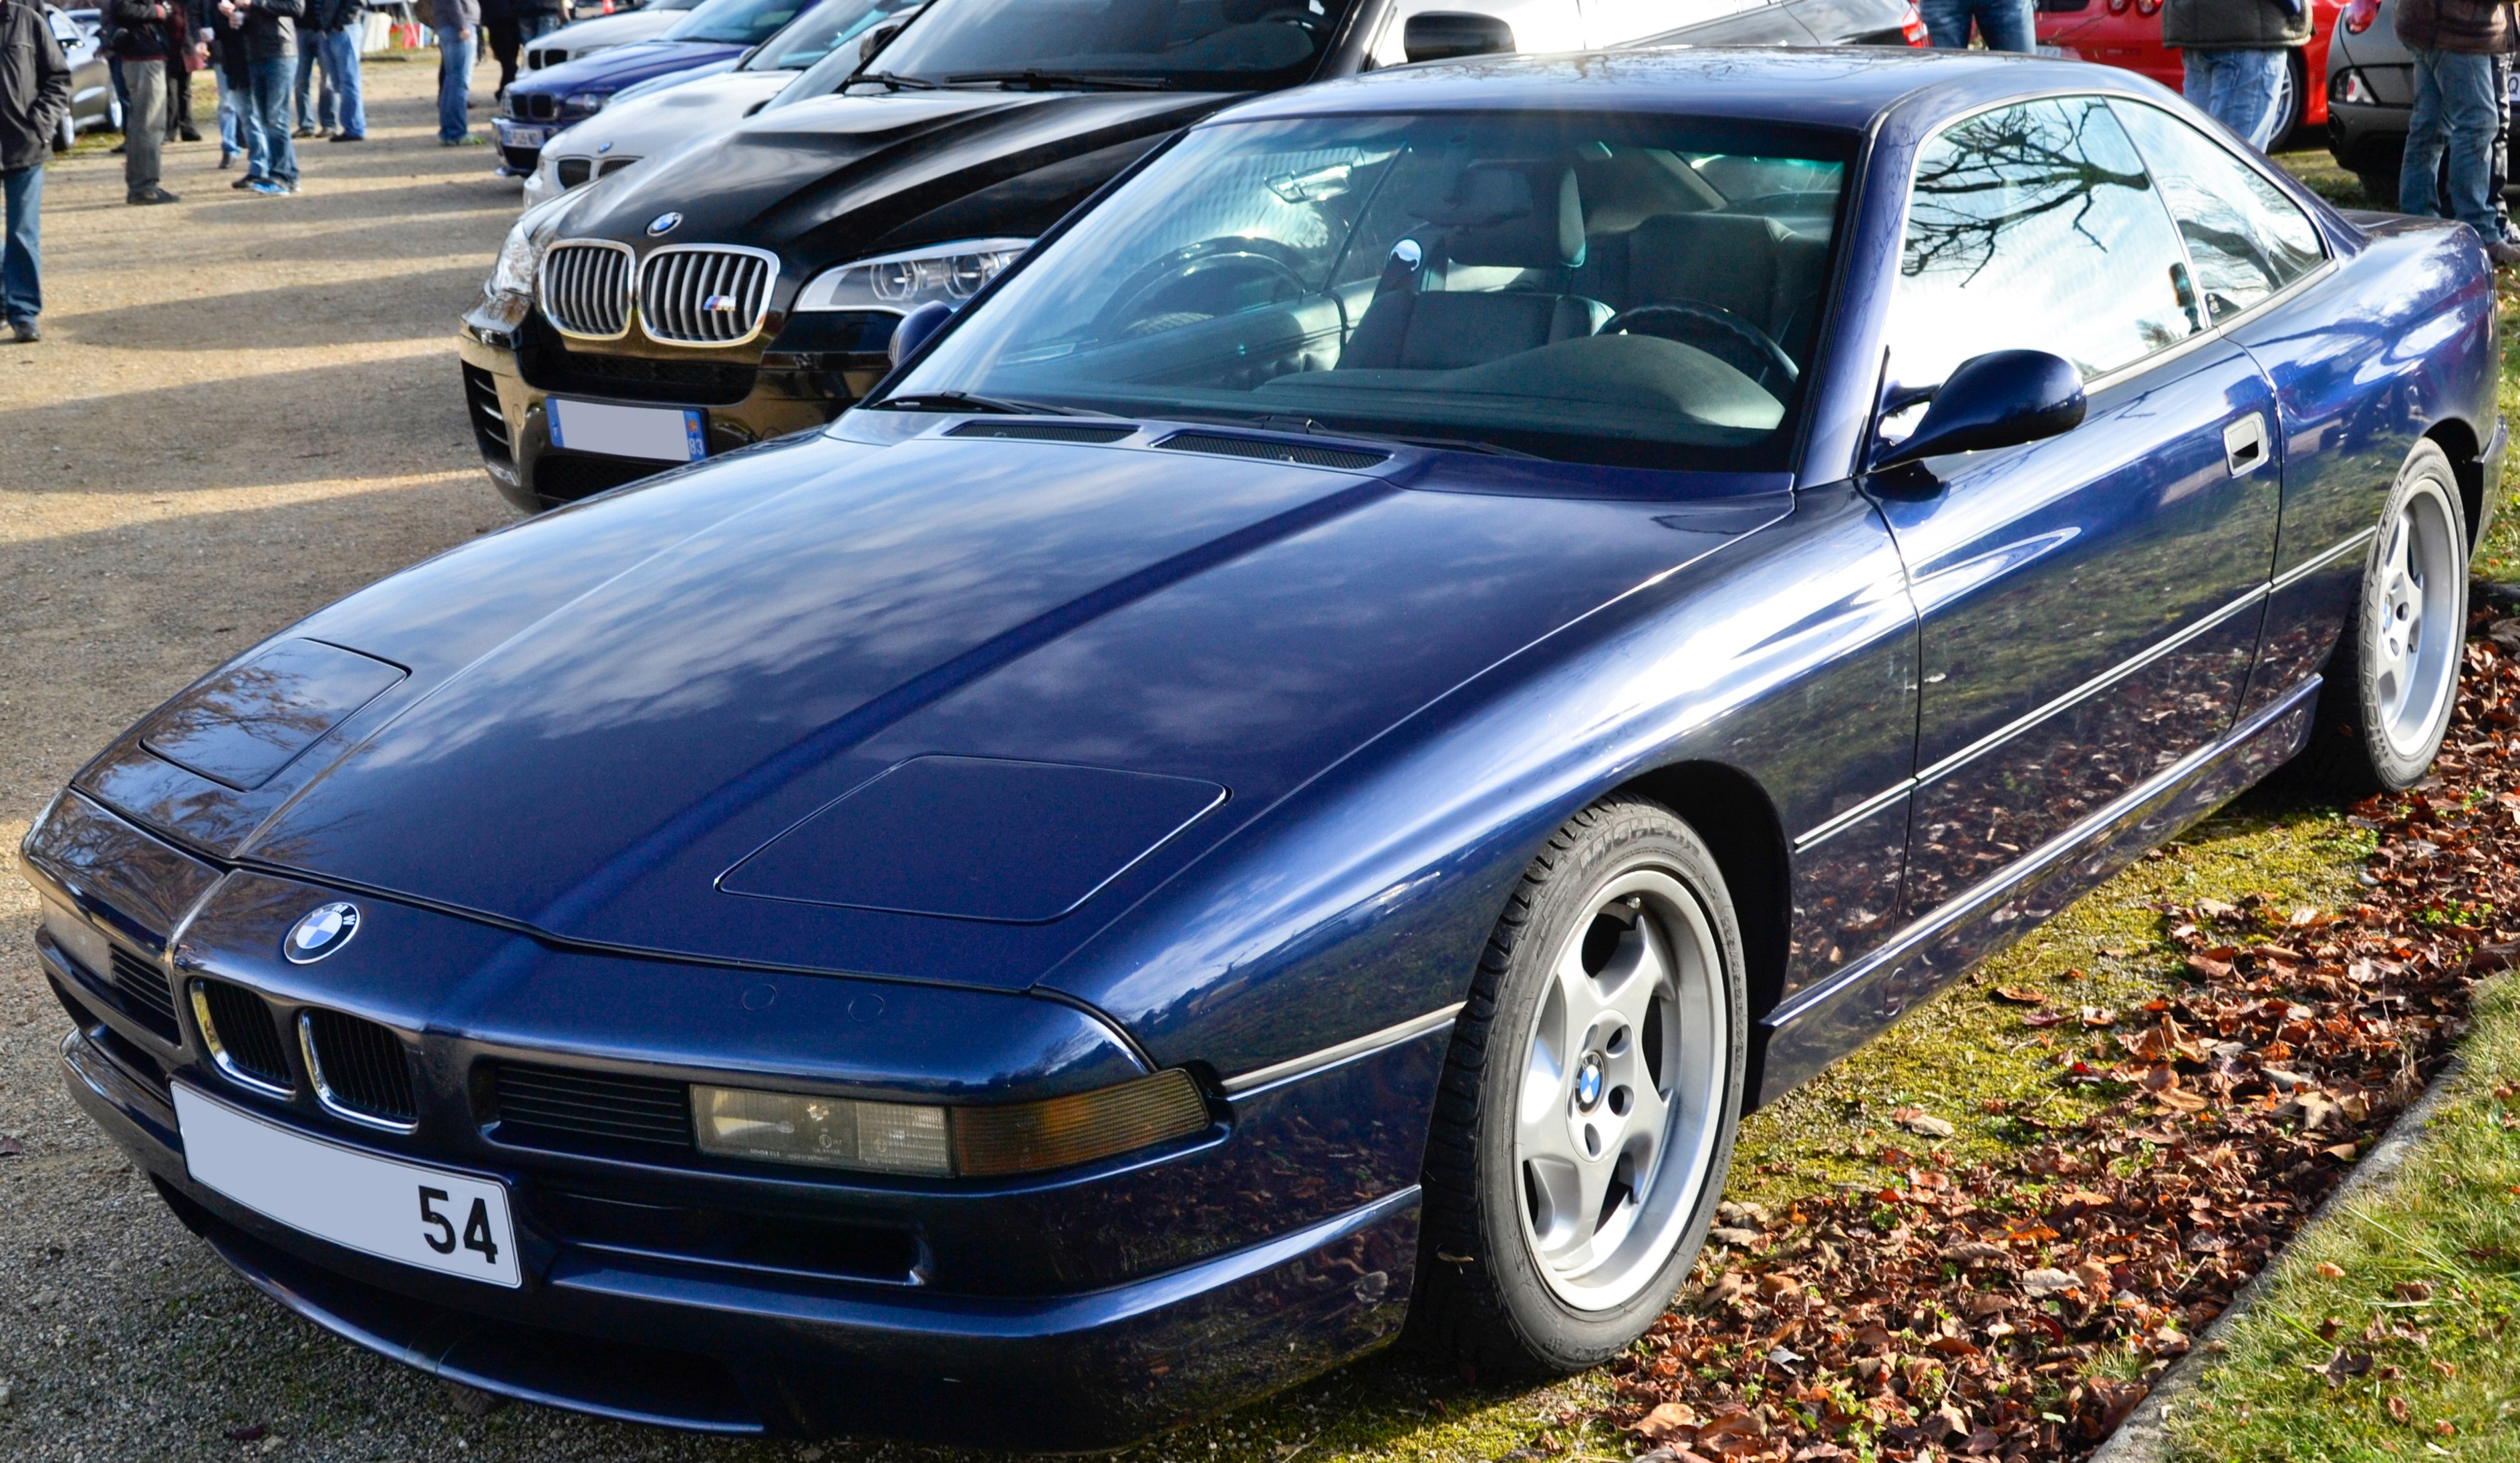 3771 Tivoli Garden Terrace Fremont Ca Bmw 850csi The Complete Information And Online Sale With Free